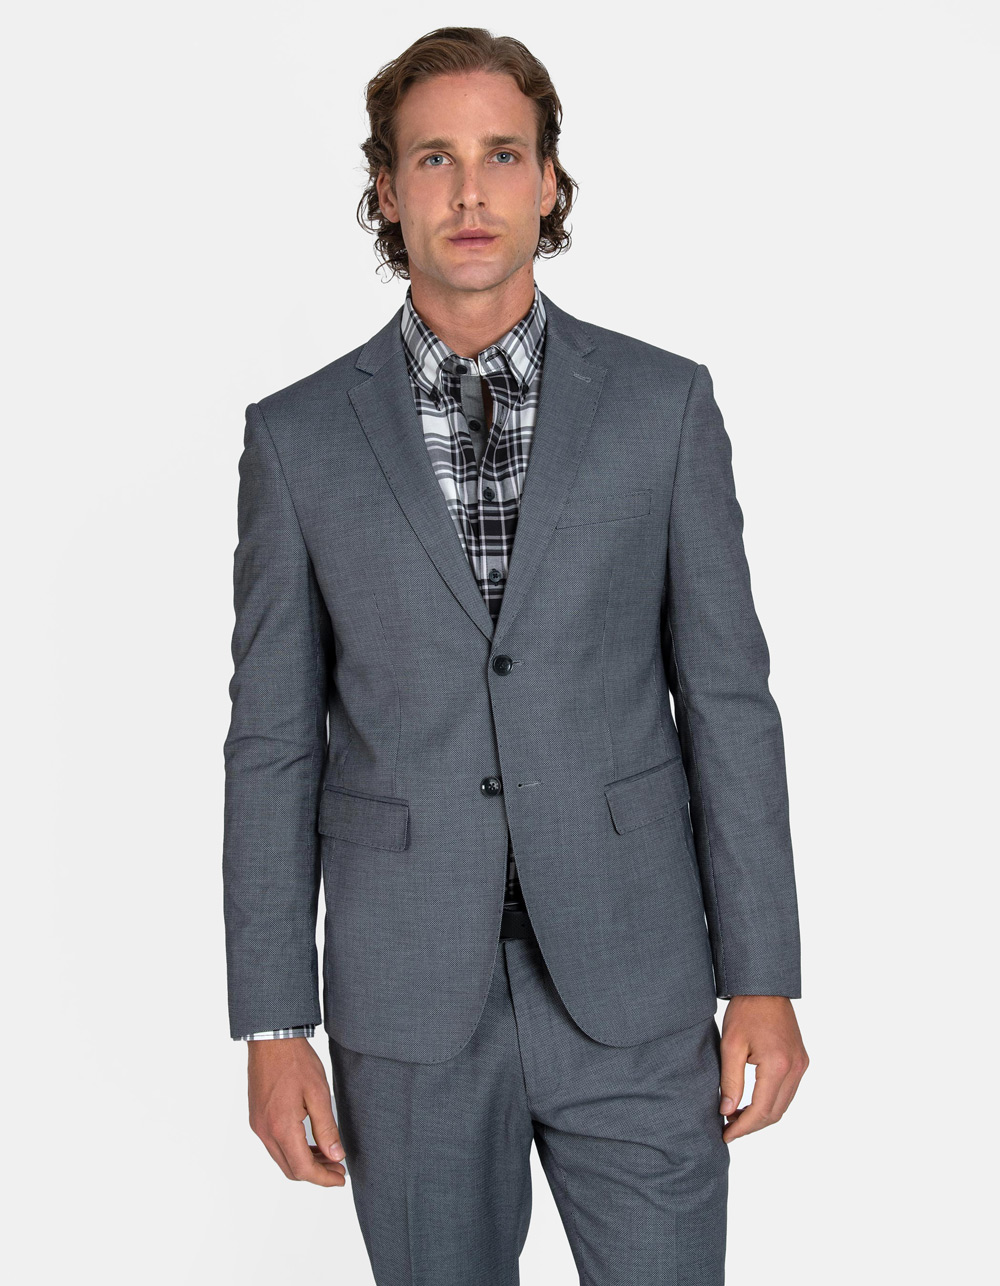 Light grey birdseye suit